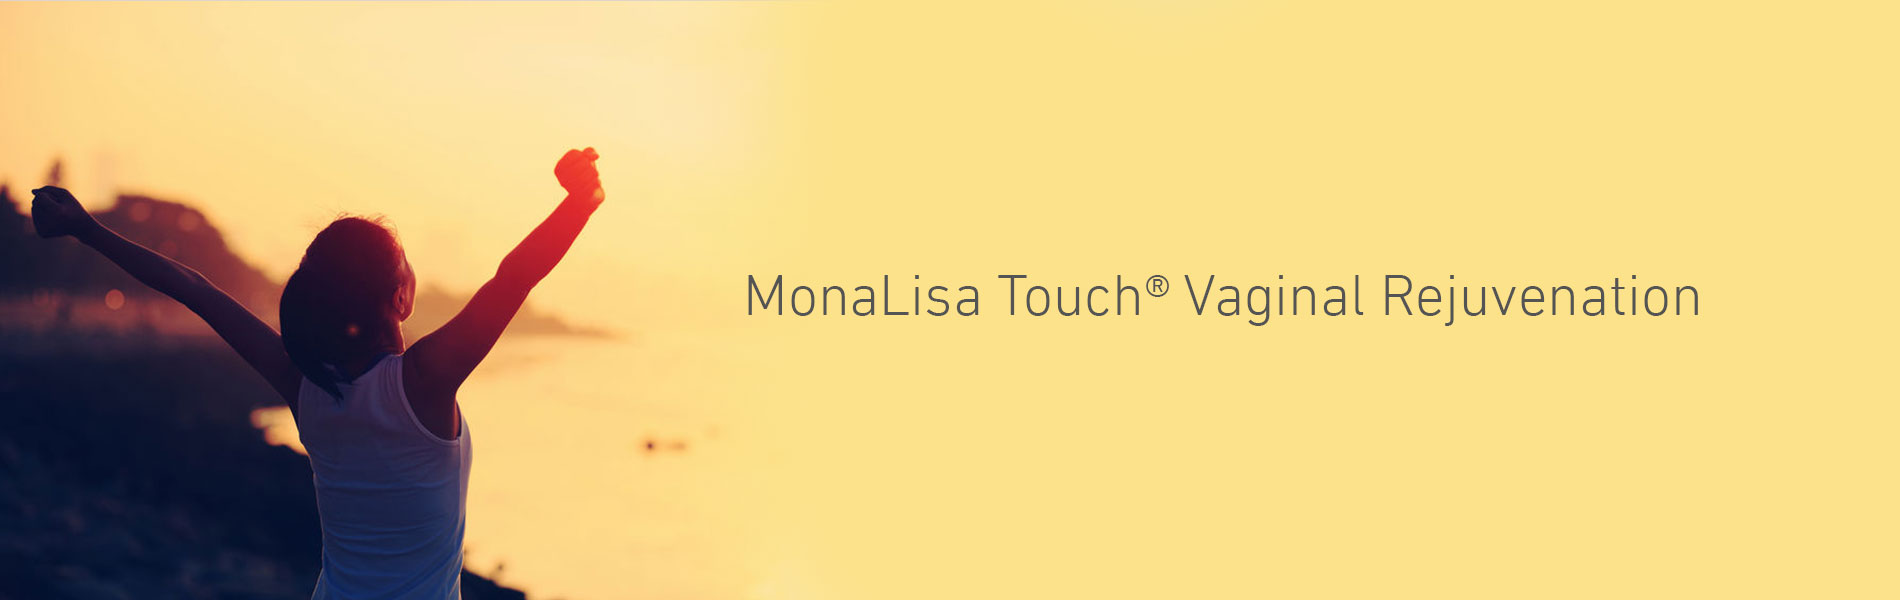 MONA LISA TOUCH VAGINAL TIGHTENING IN SOUTHAMPTON